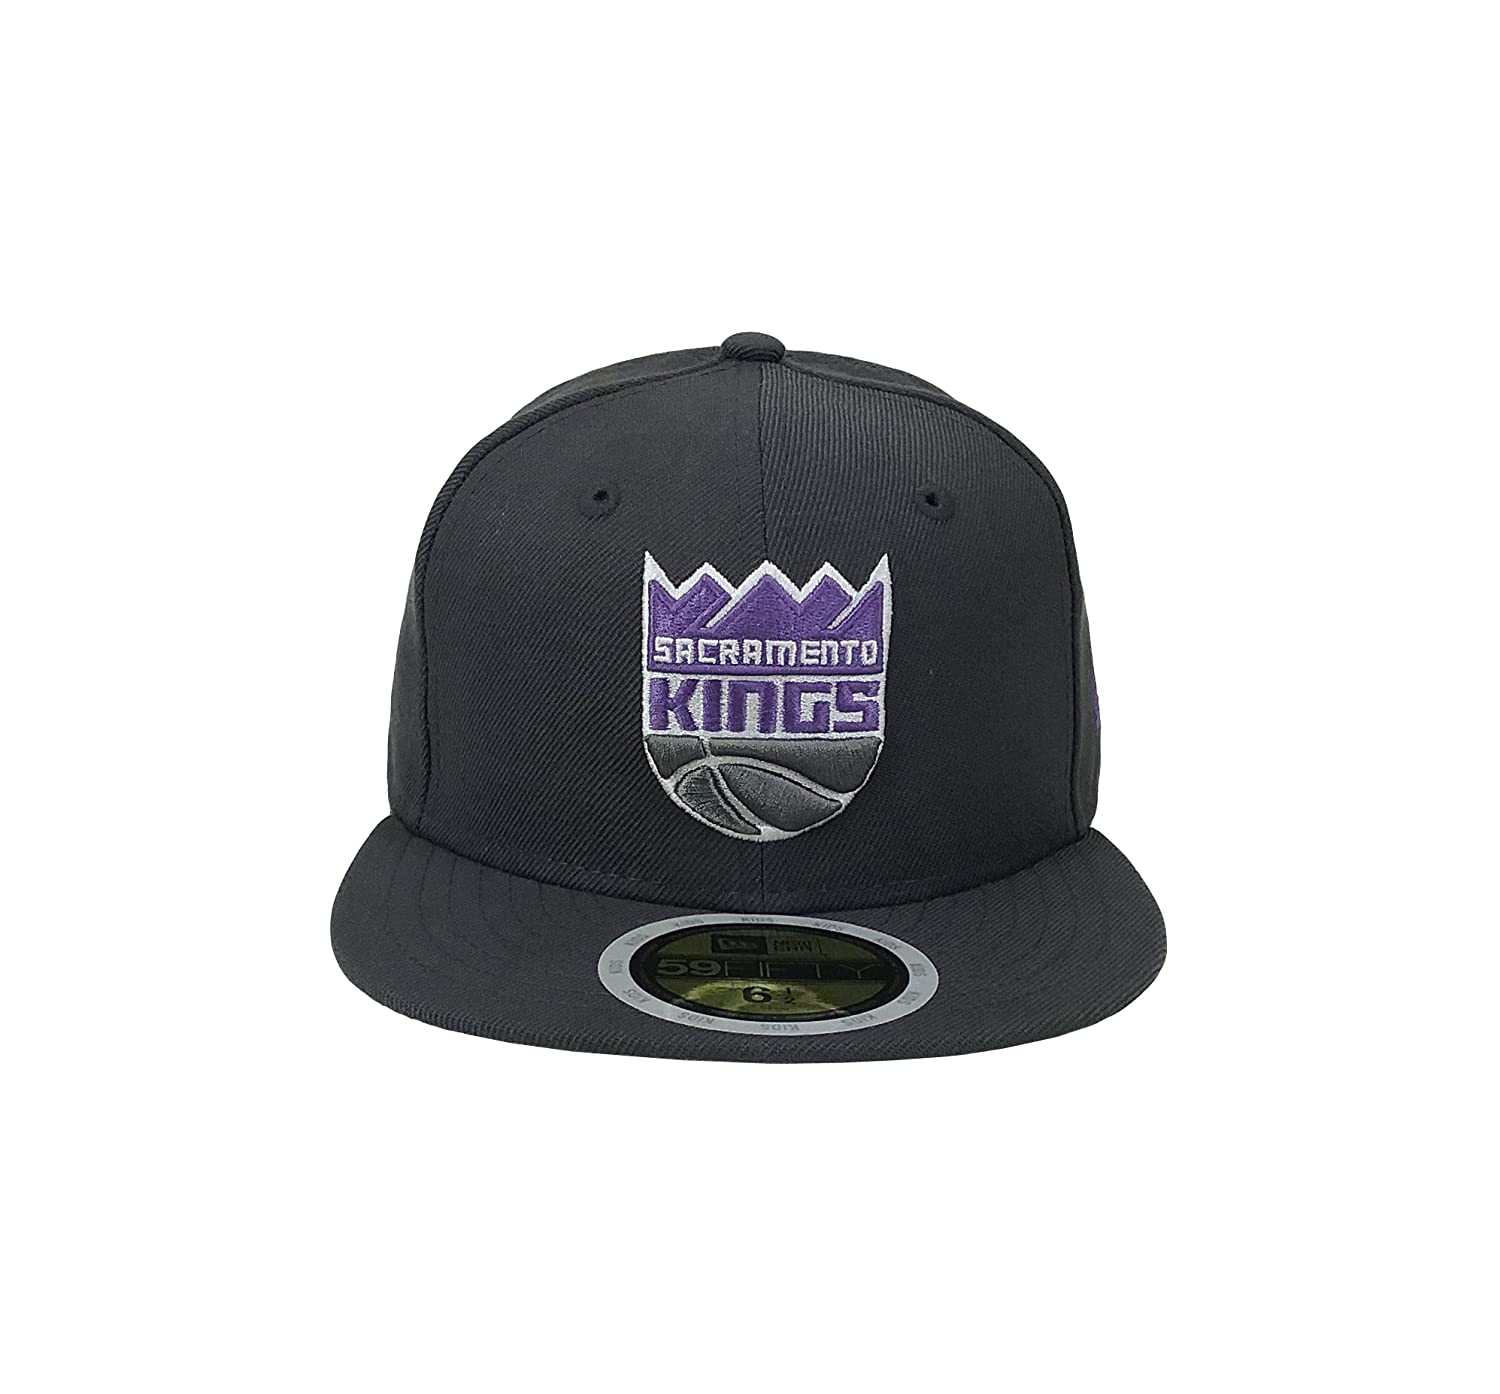 wholesale dealer d288d 2d2cd ... shop amazon new era 59fifty kids hat nba sacramento kings classic wool  charcoal gray fitted cap